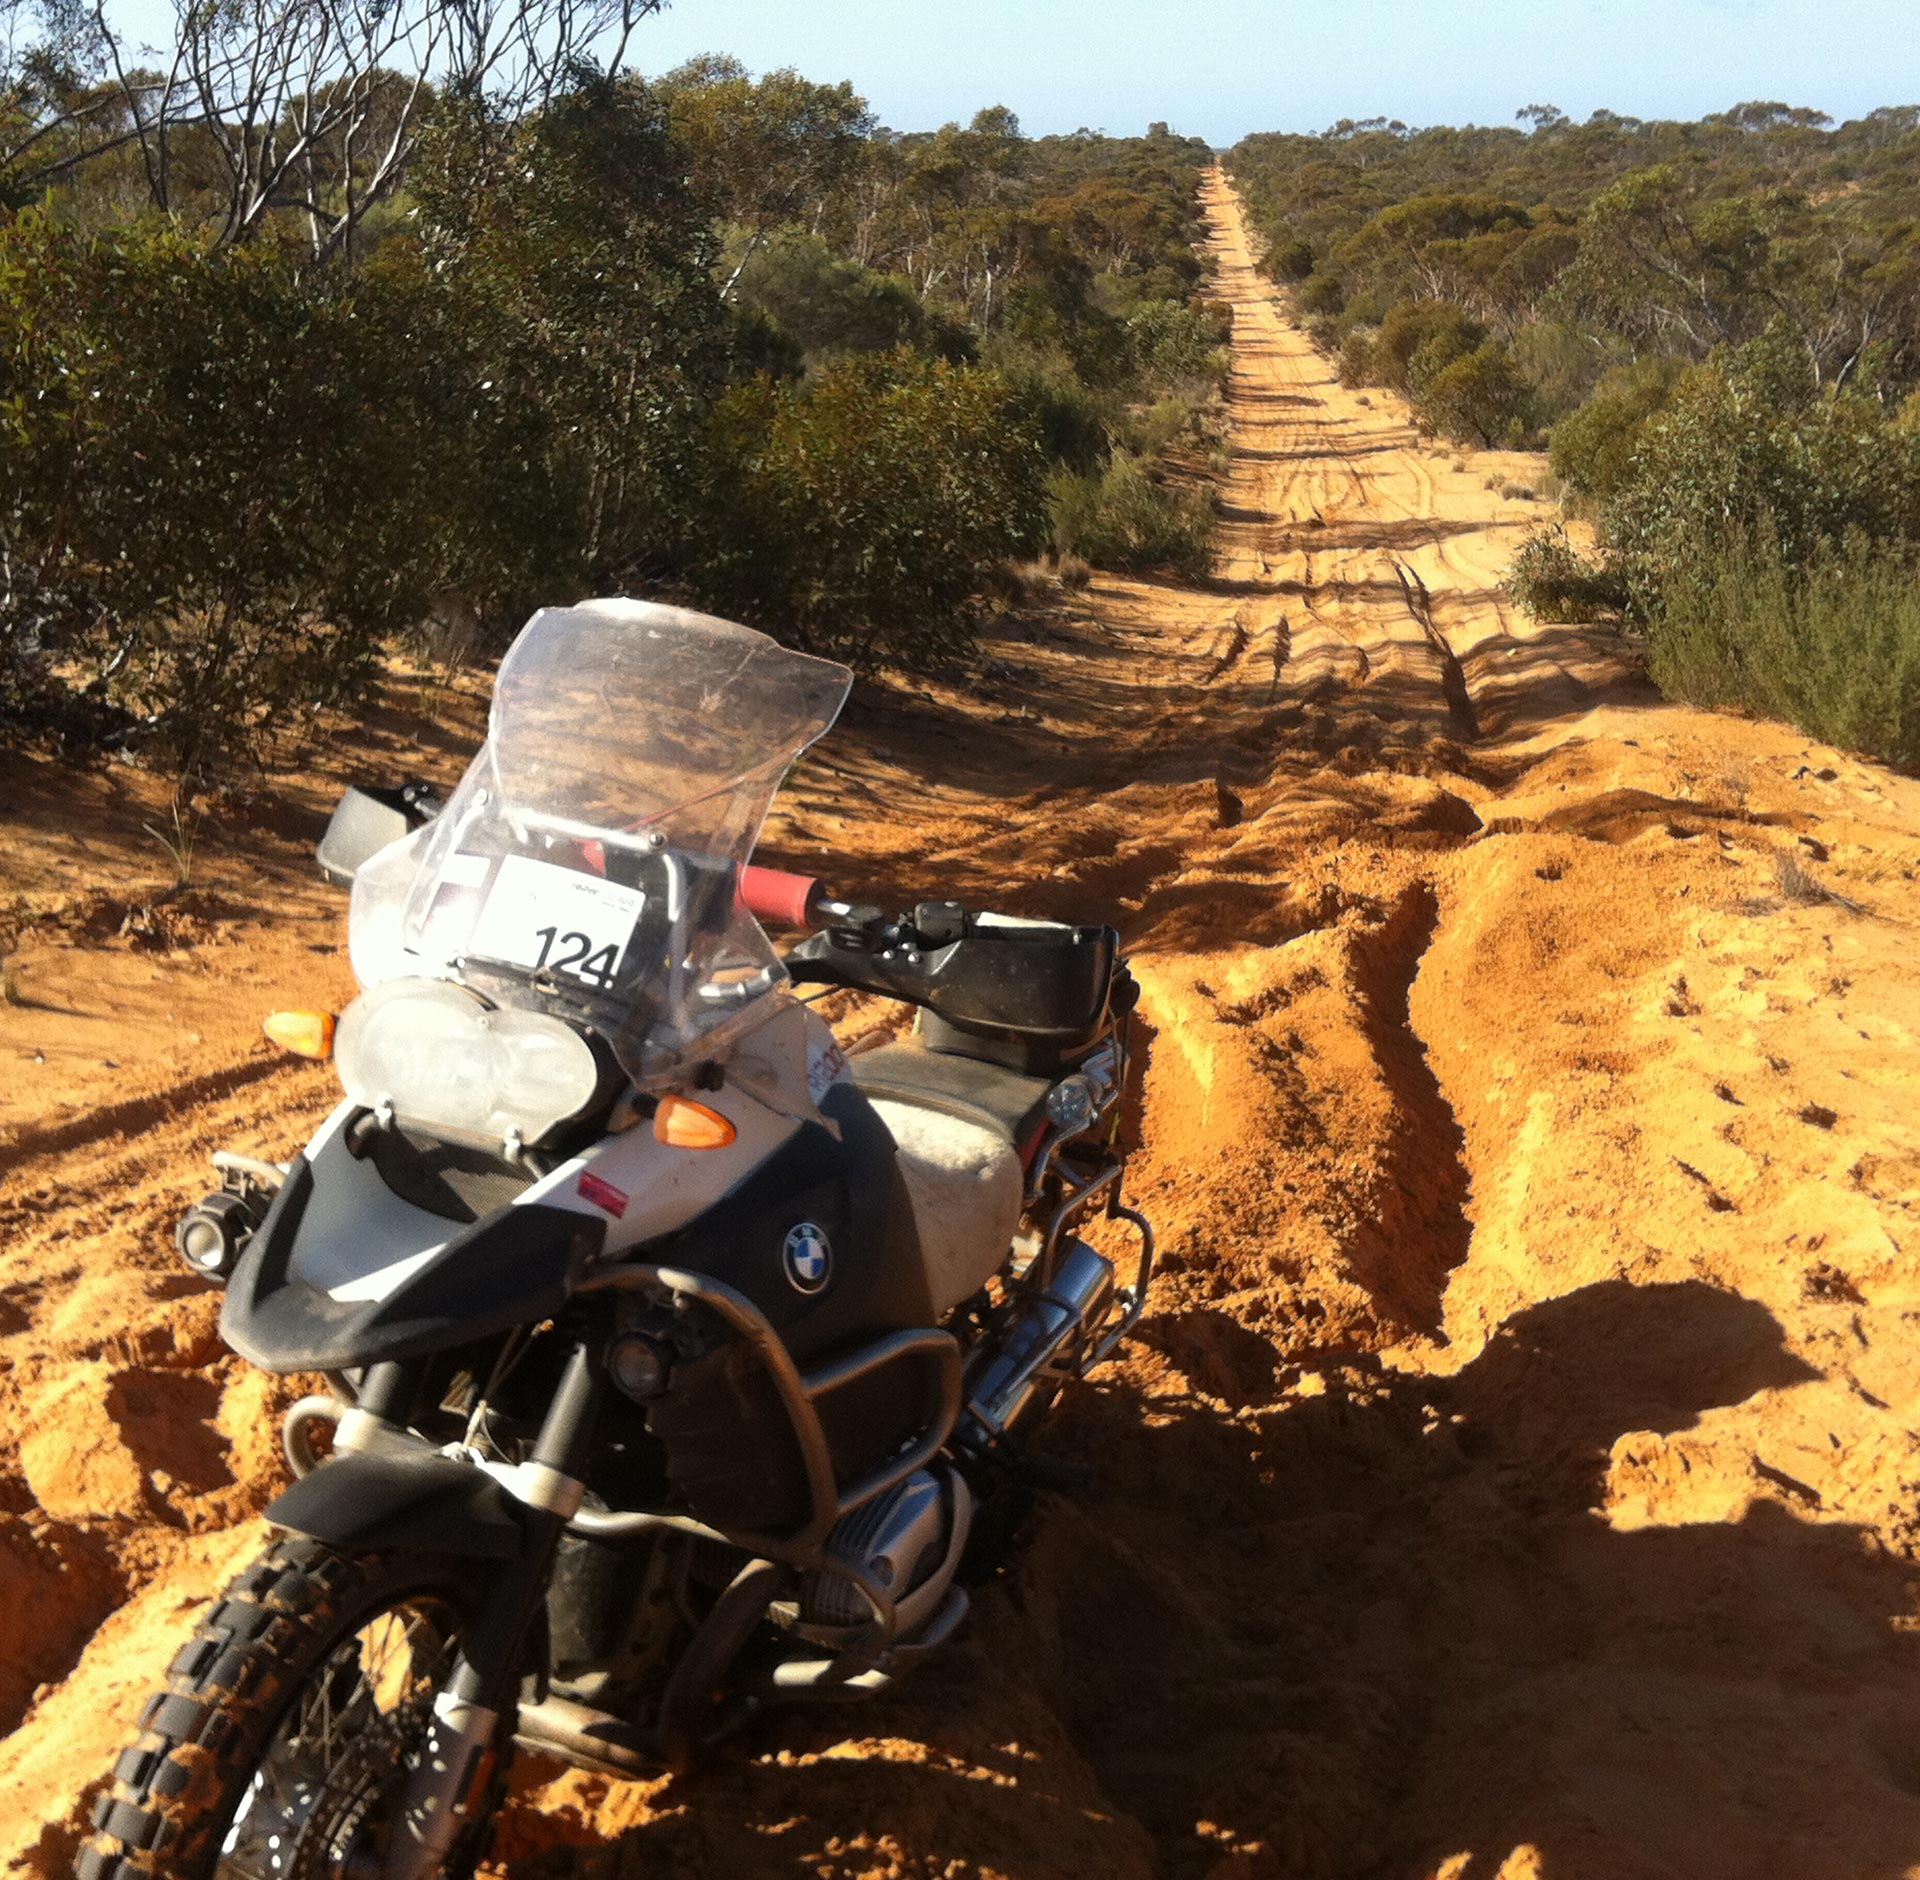 BMW GS Safari Enduro 2015 - Up for this on a big GS?